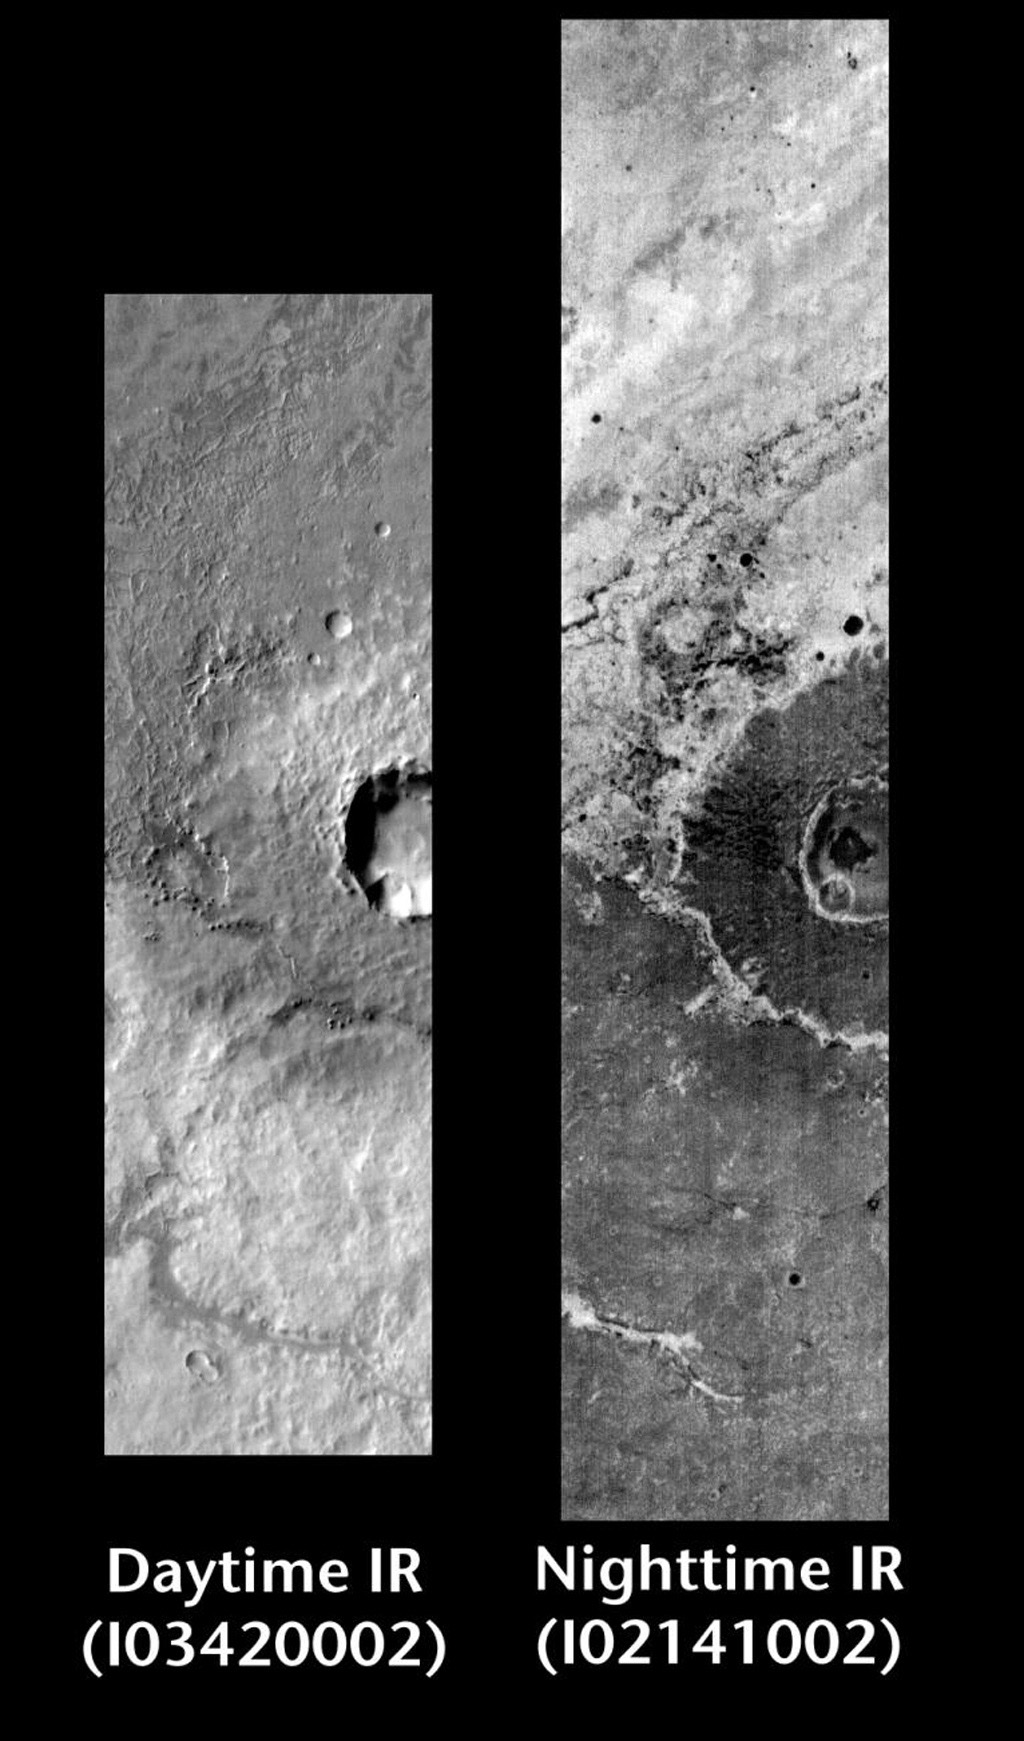 This pair of images released on June 14, 2004 from NASA's 2001 Mars Odyssey shows a comparison of daytime and nighttime of crater ejecta in the Terra Meridiani region on Mars.